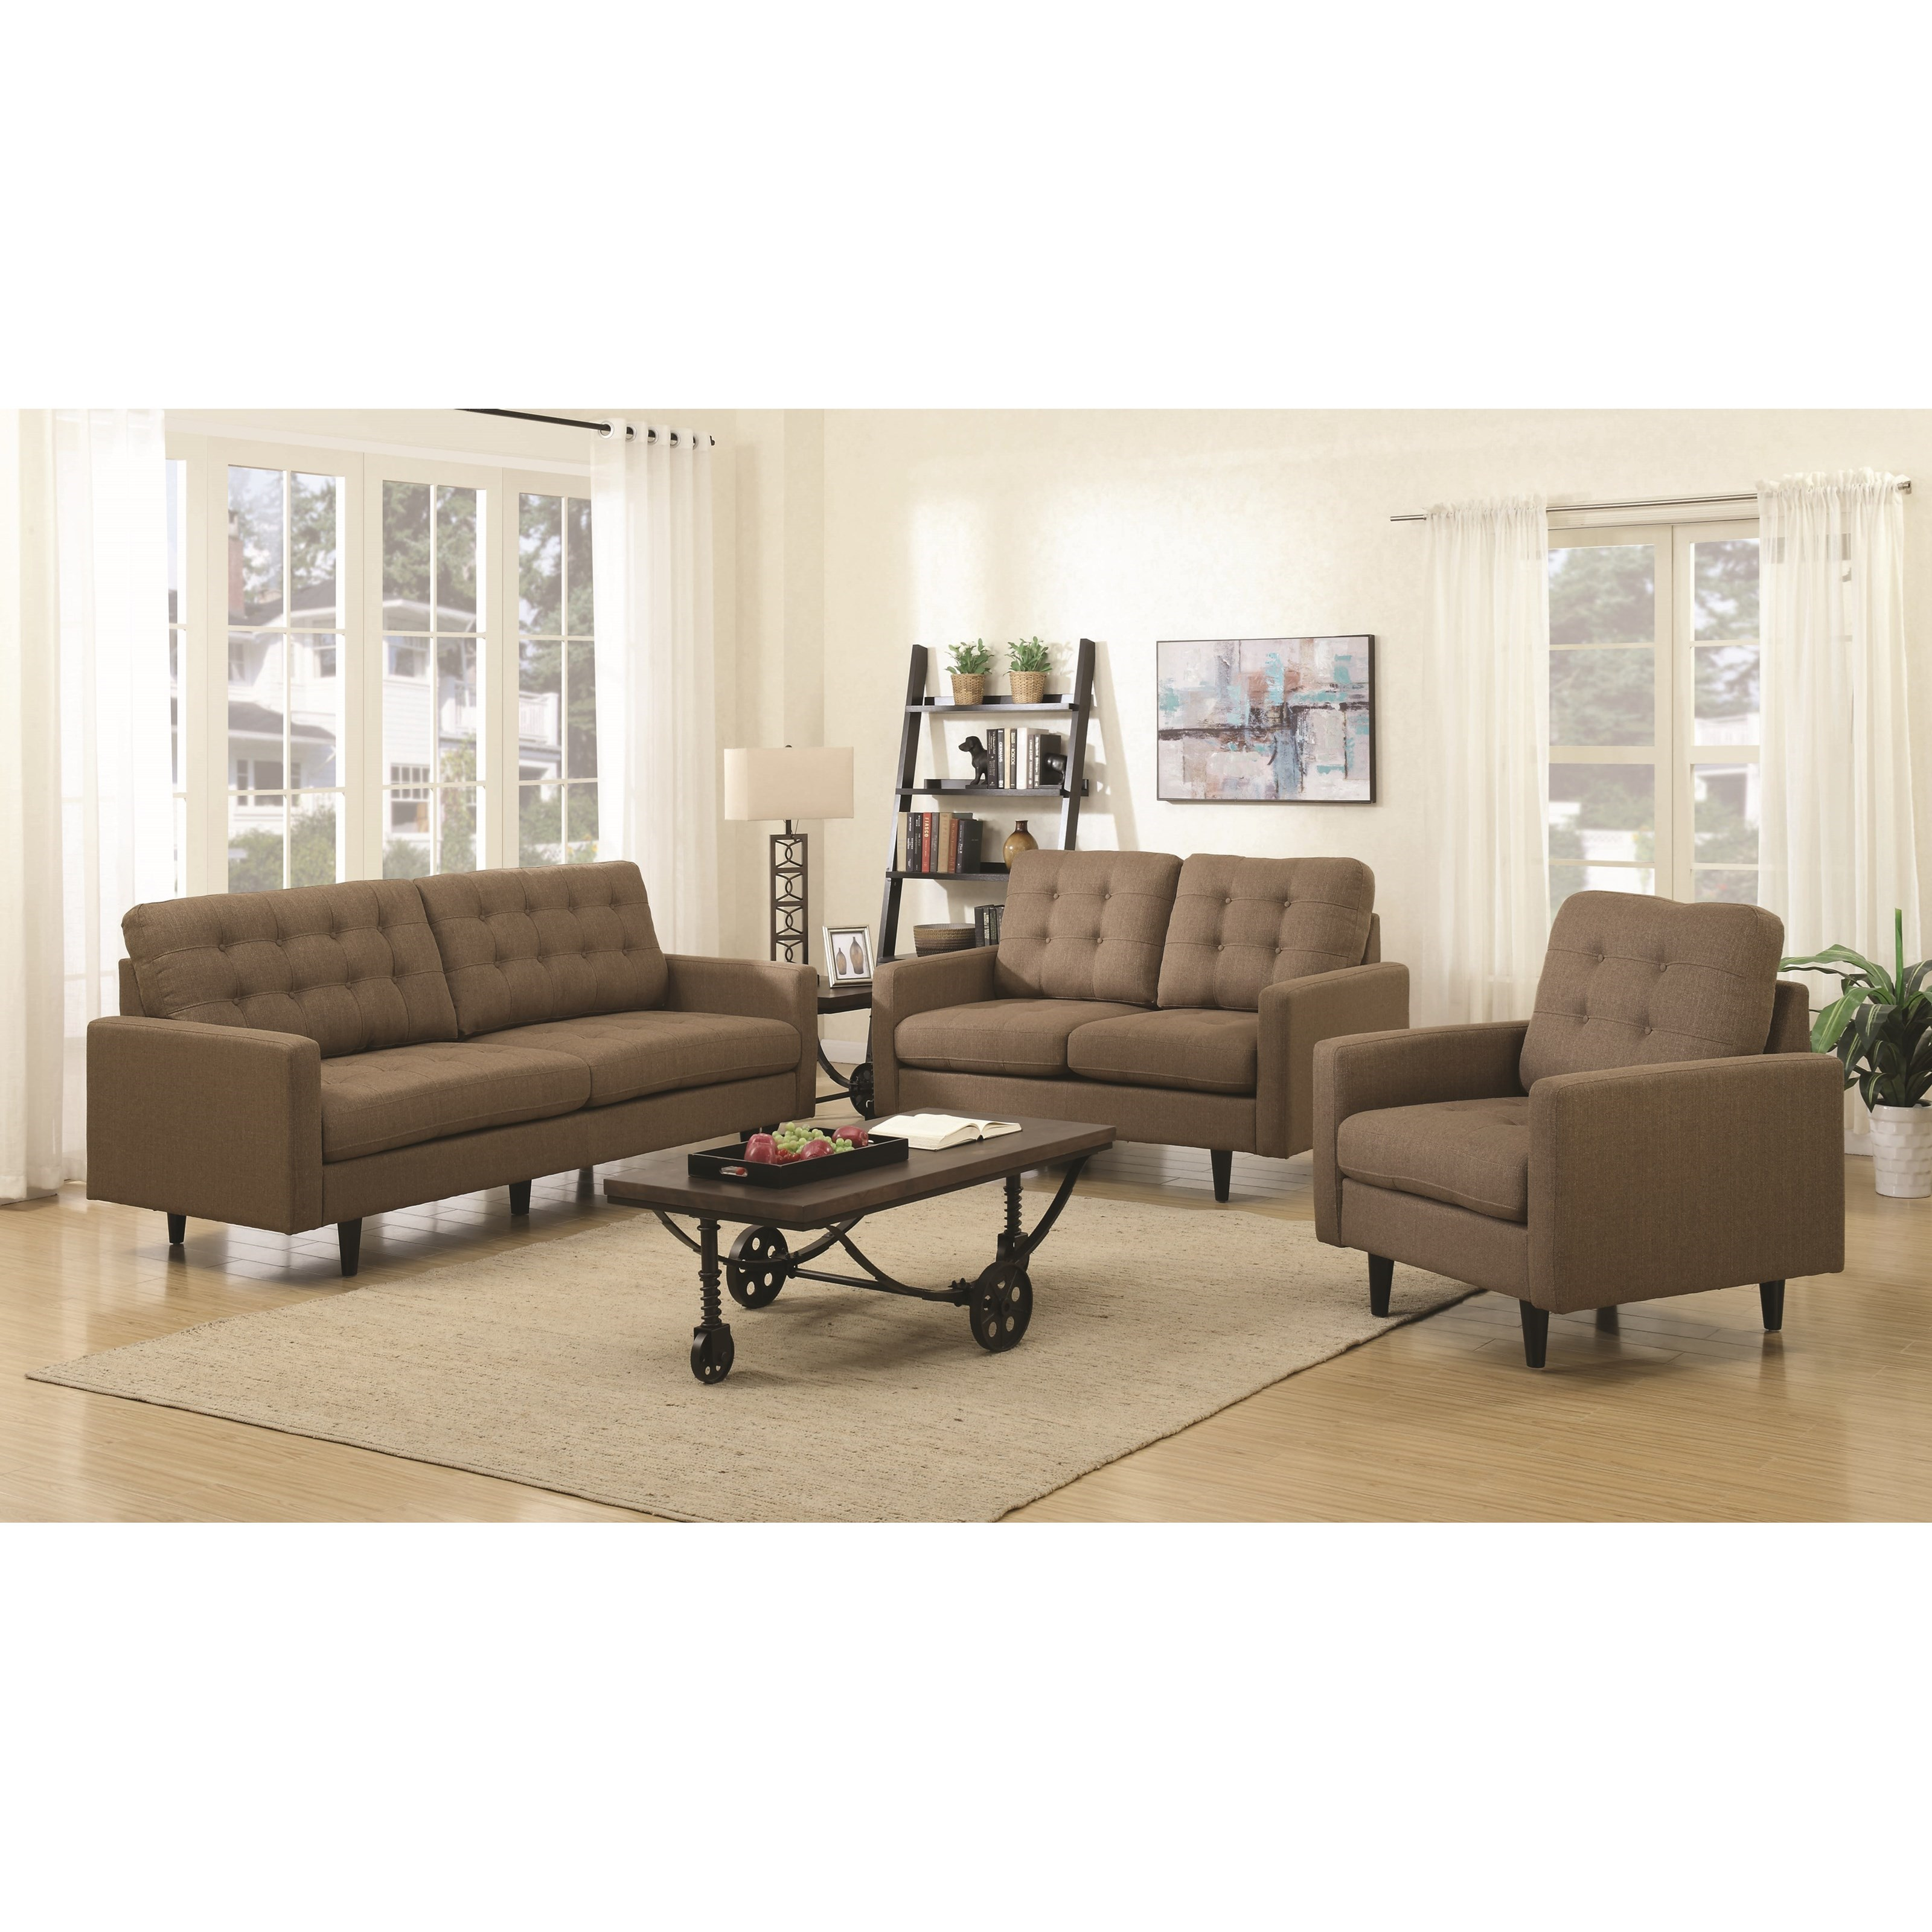 Coaster kesson mid century modern living room group for Living room furniture groups